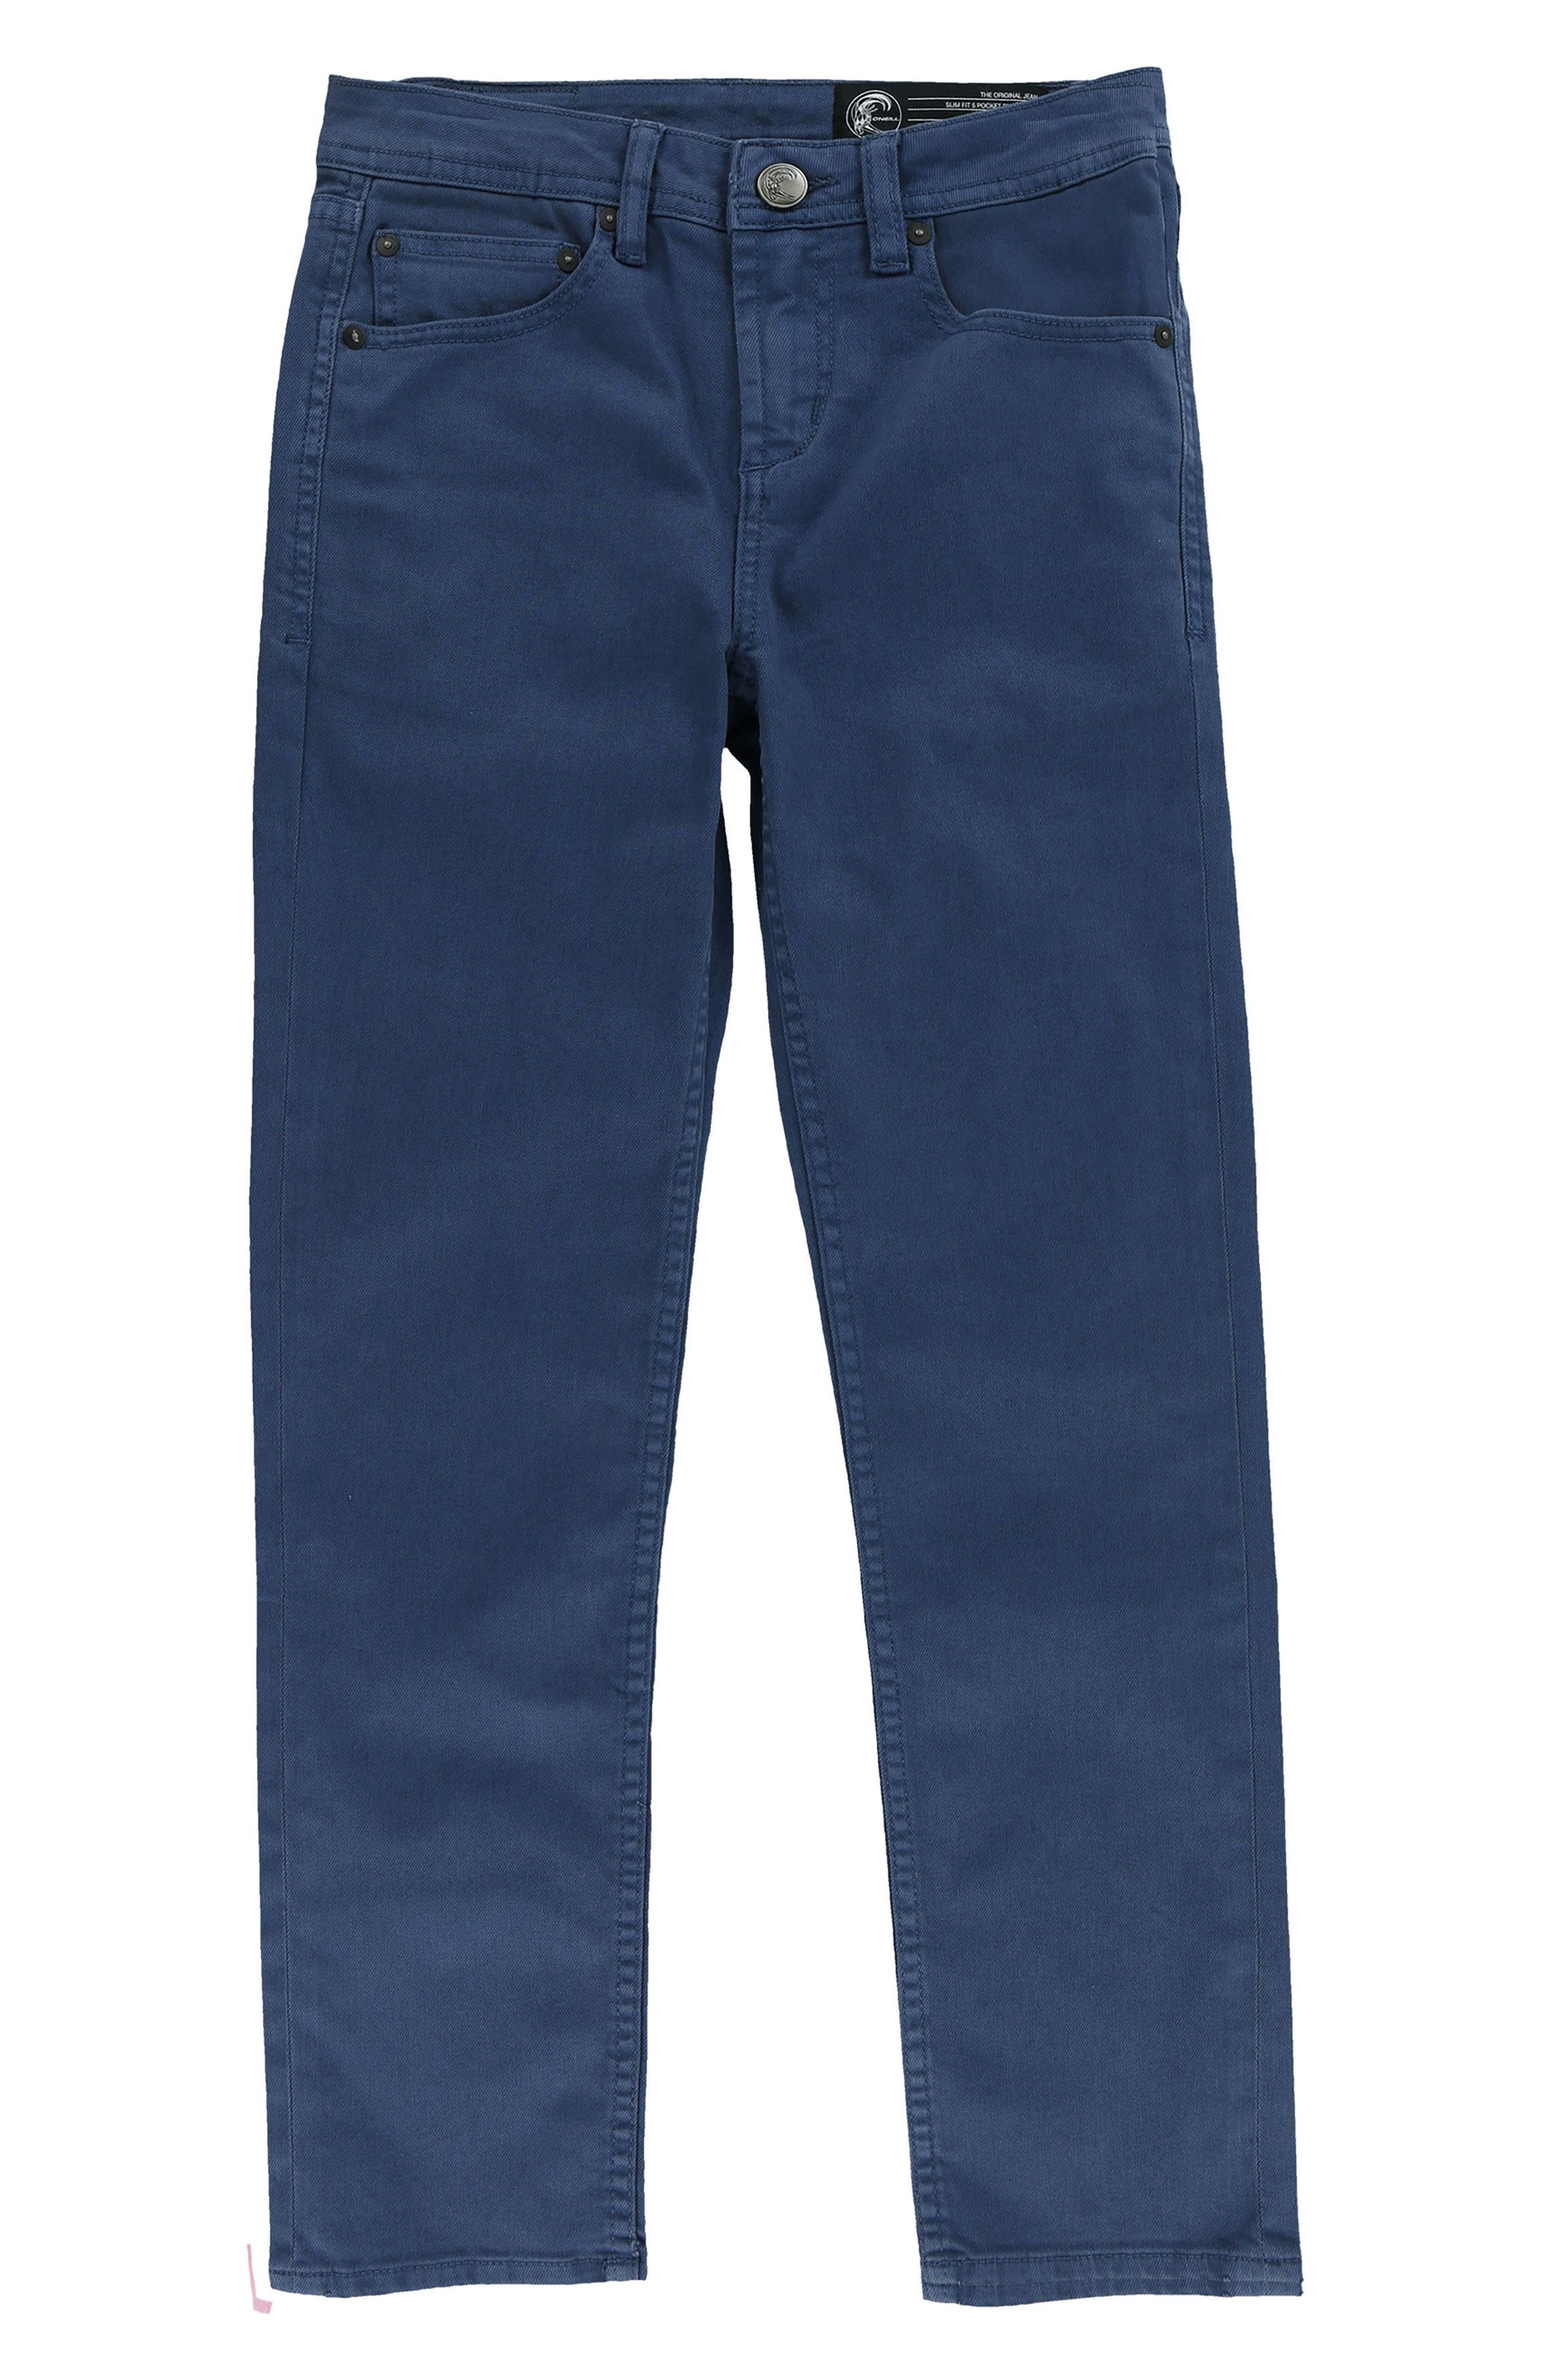 Alternate Image 1 Selected - O'Neill The Slim Twill Pants (Big Boys)